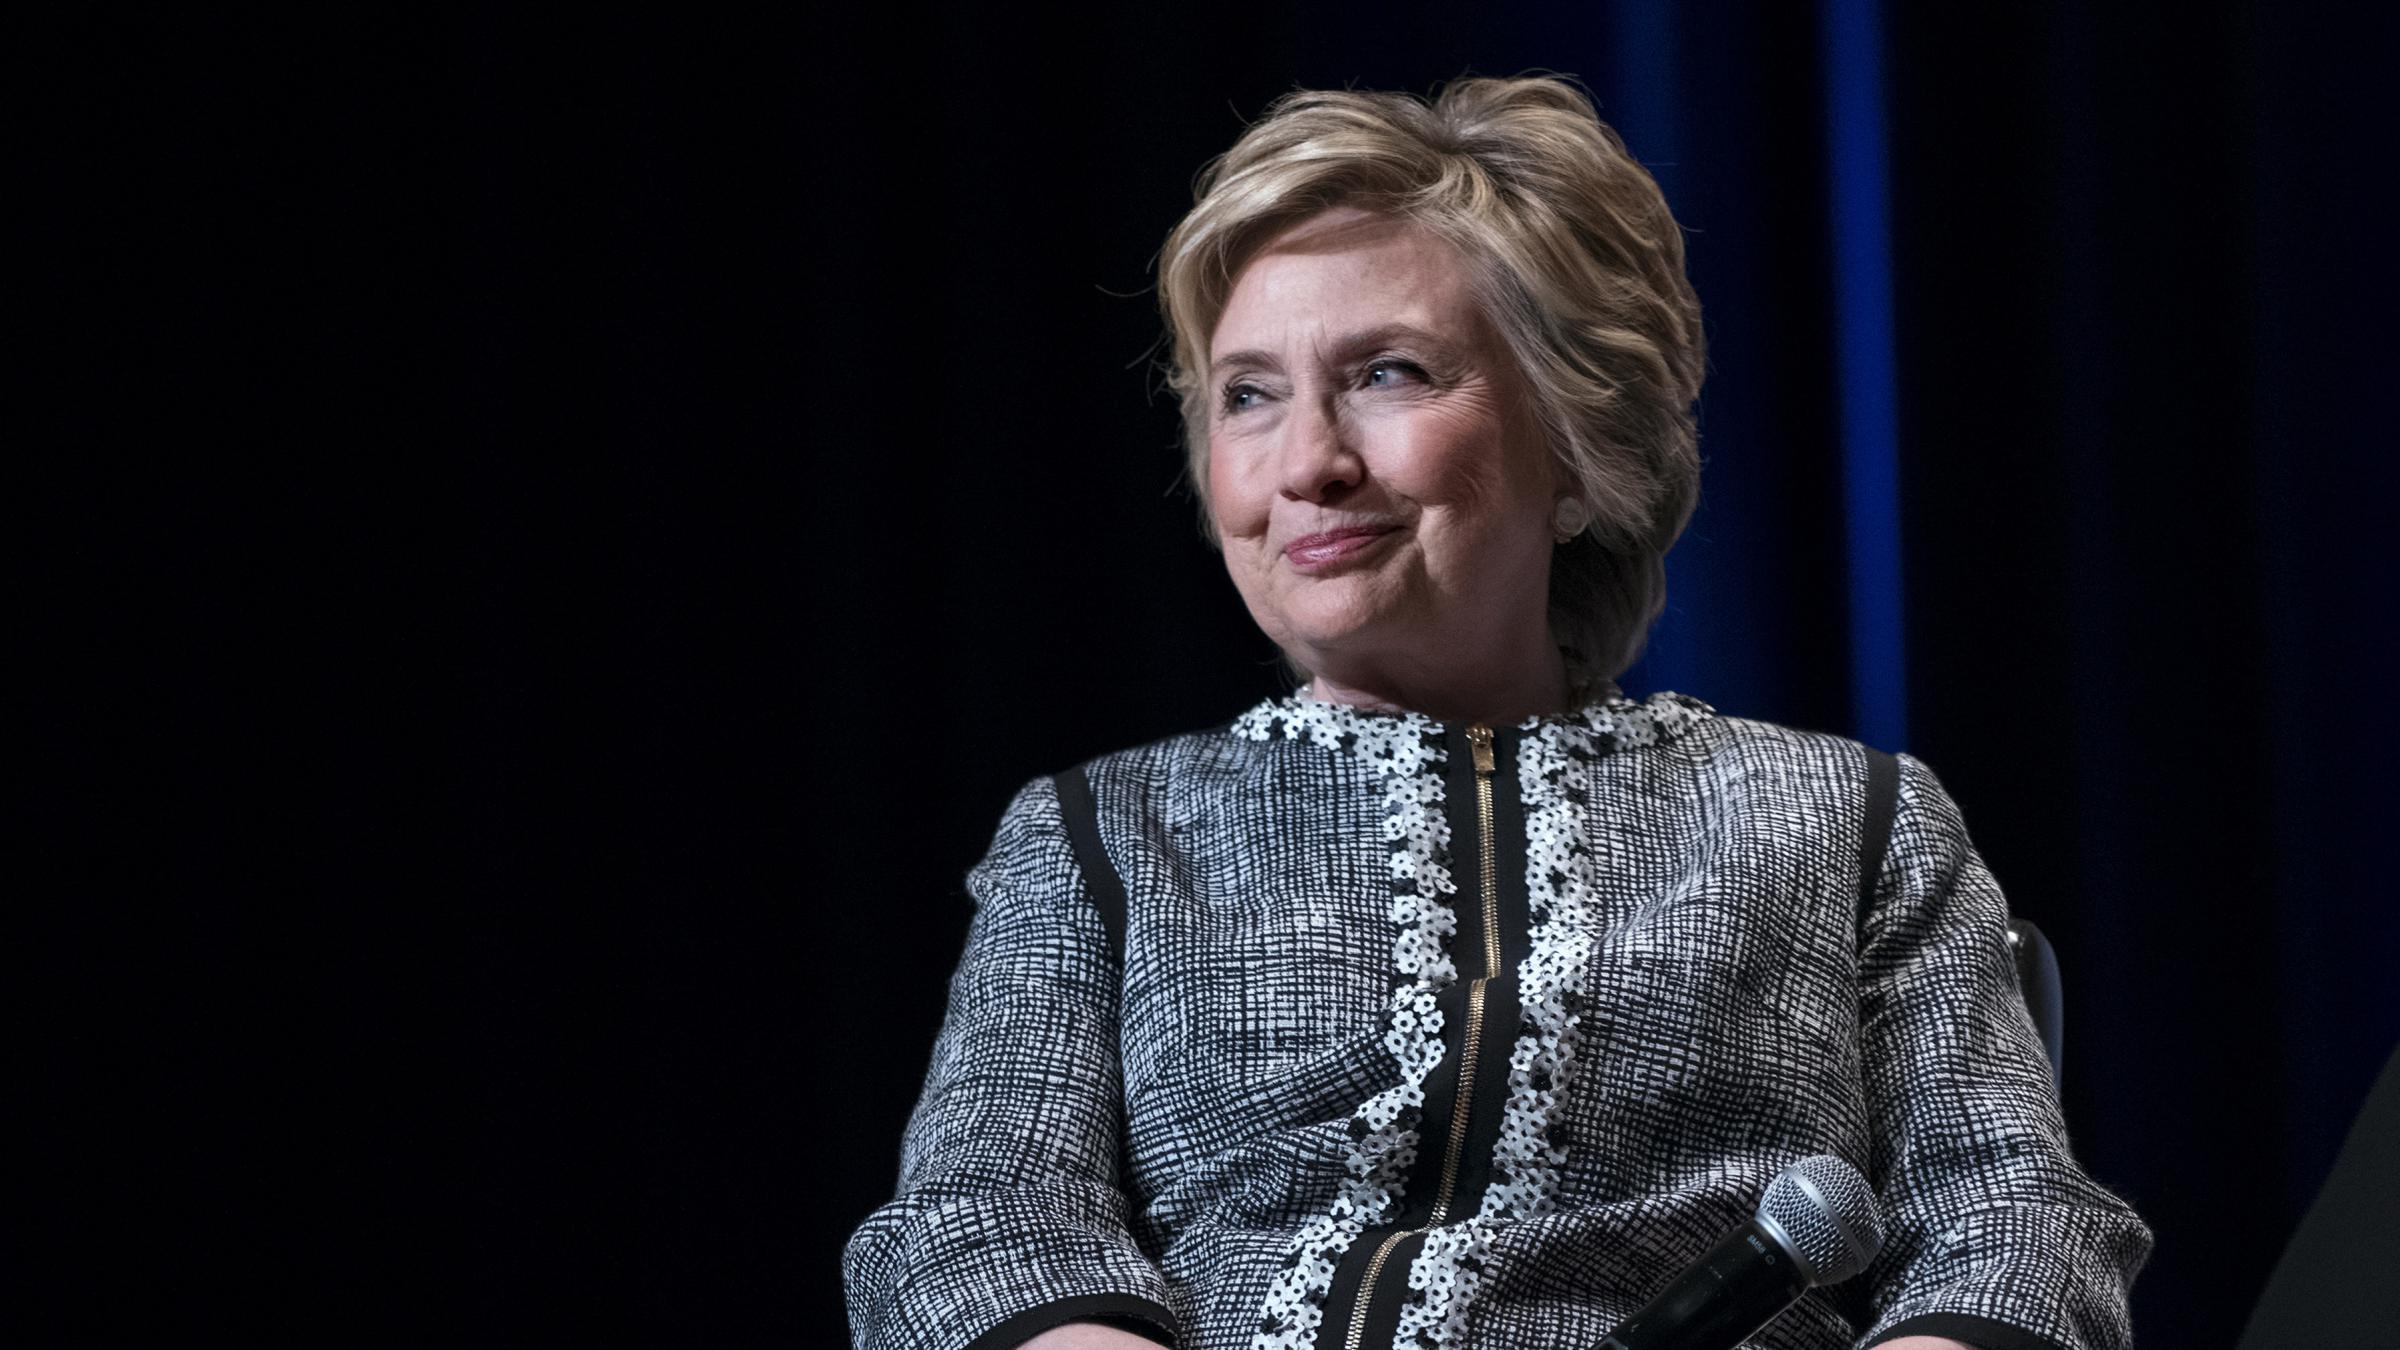 Hillary Clinton divides Americans by attacking female voters: Sebastian Gorka